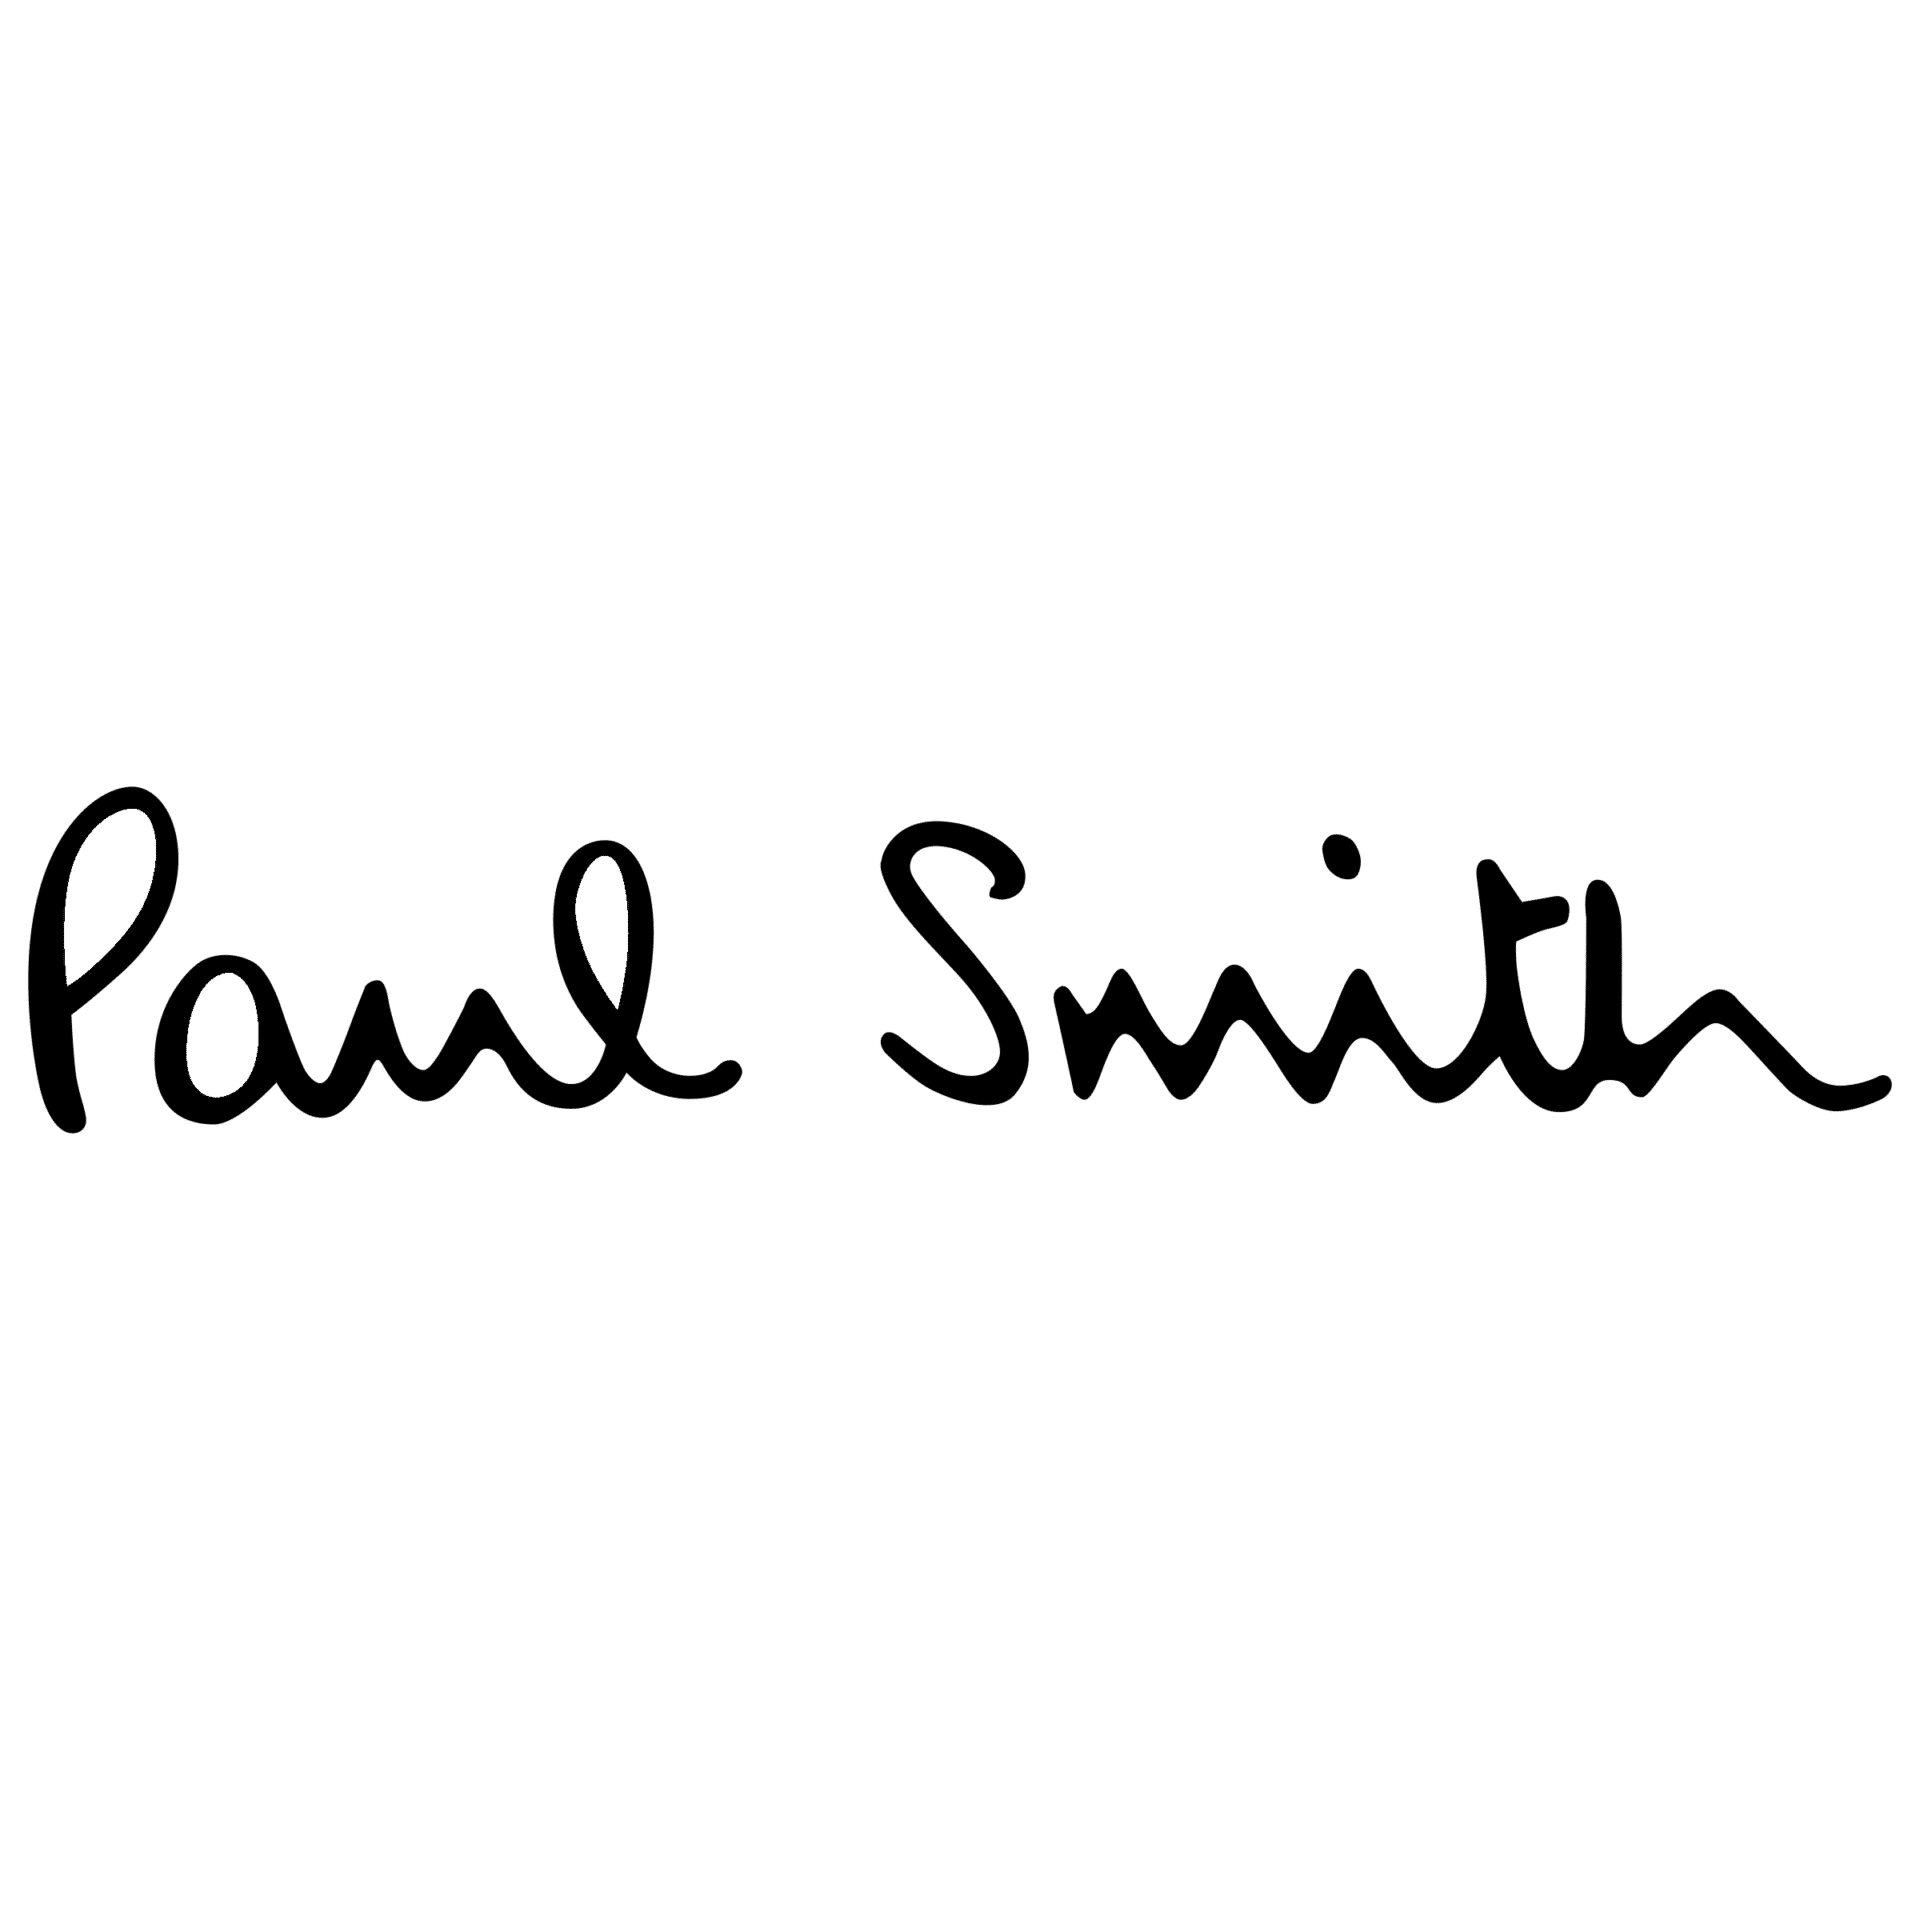 paul-smith-logo-black-and-white